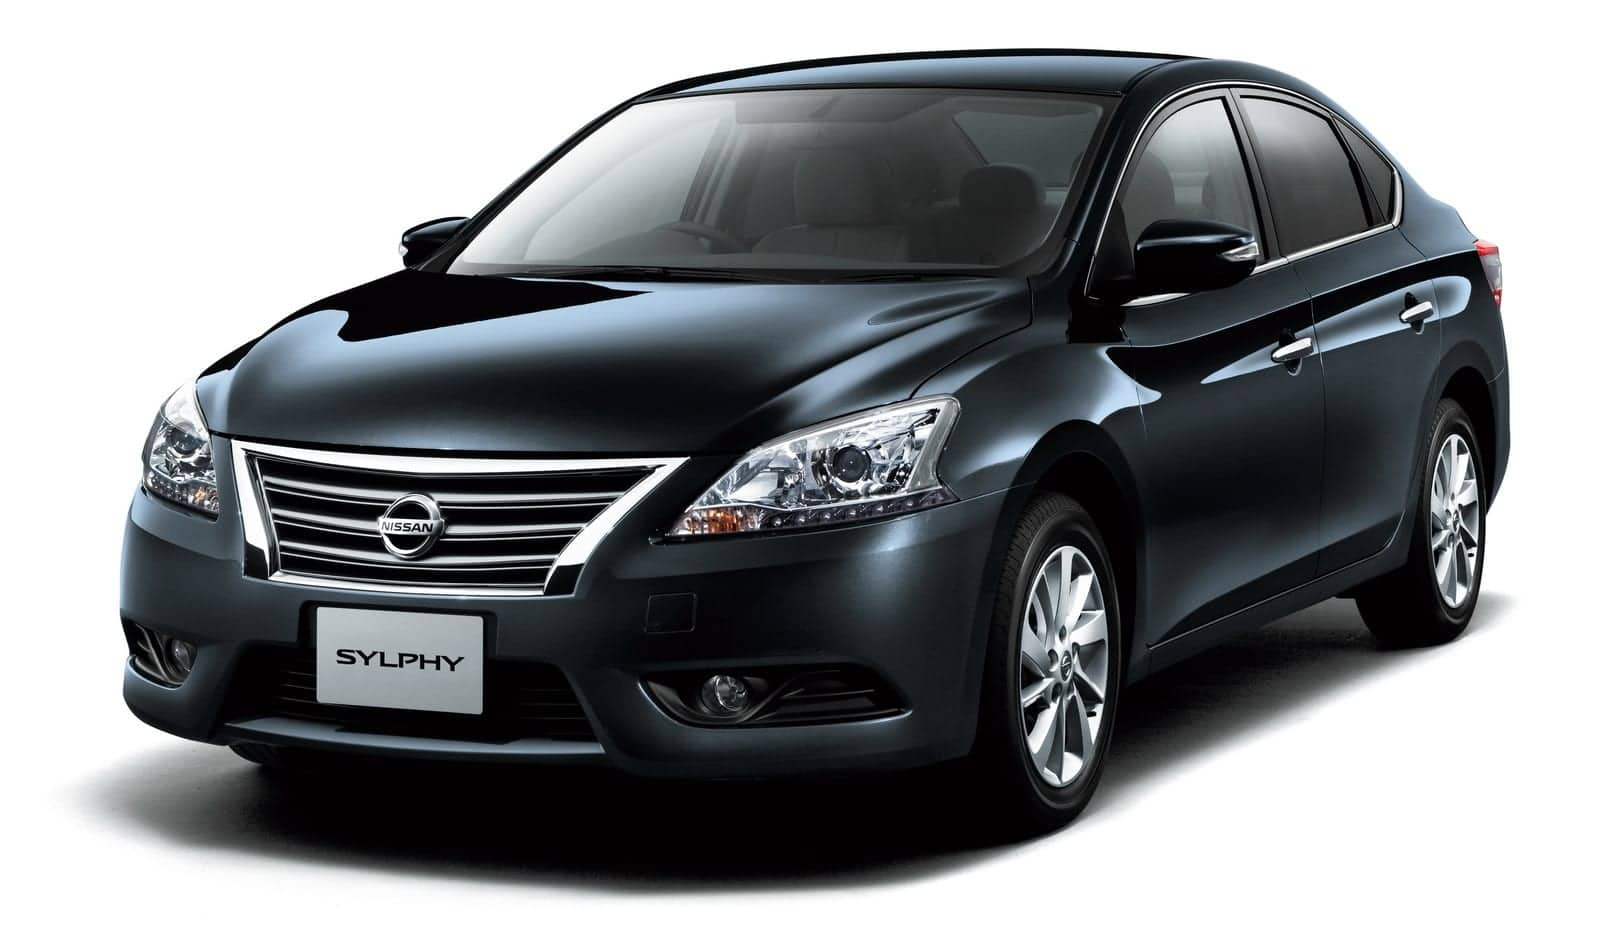 nissan_sylphy_2012